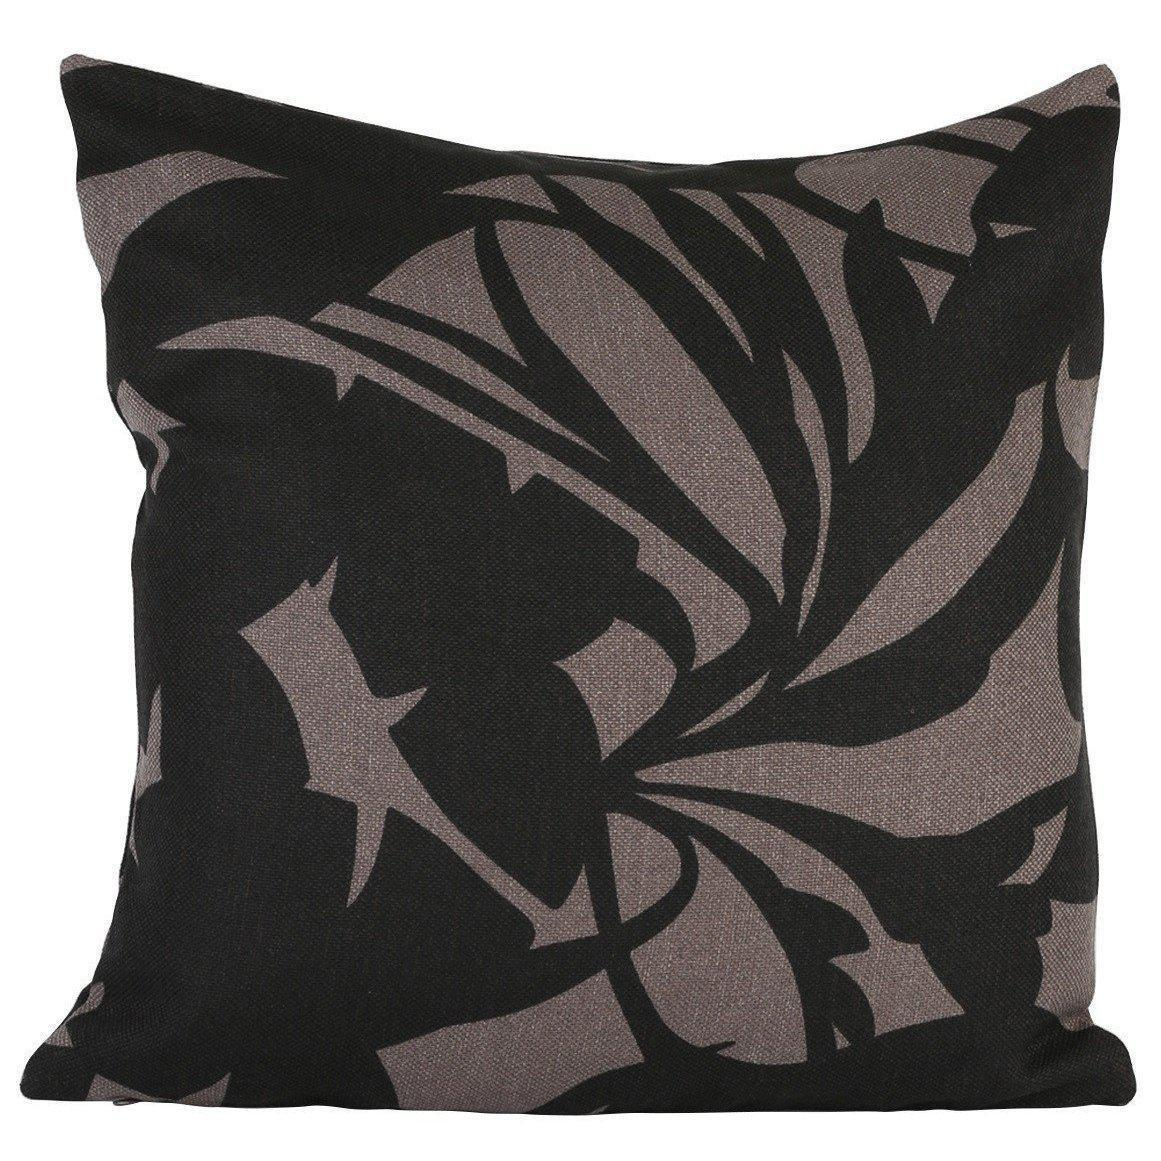 Black and Grey Leaves Cushion Cover-ML Living-Temples and Markets